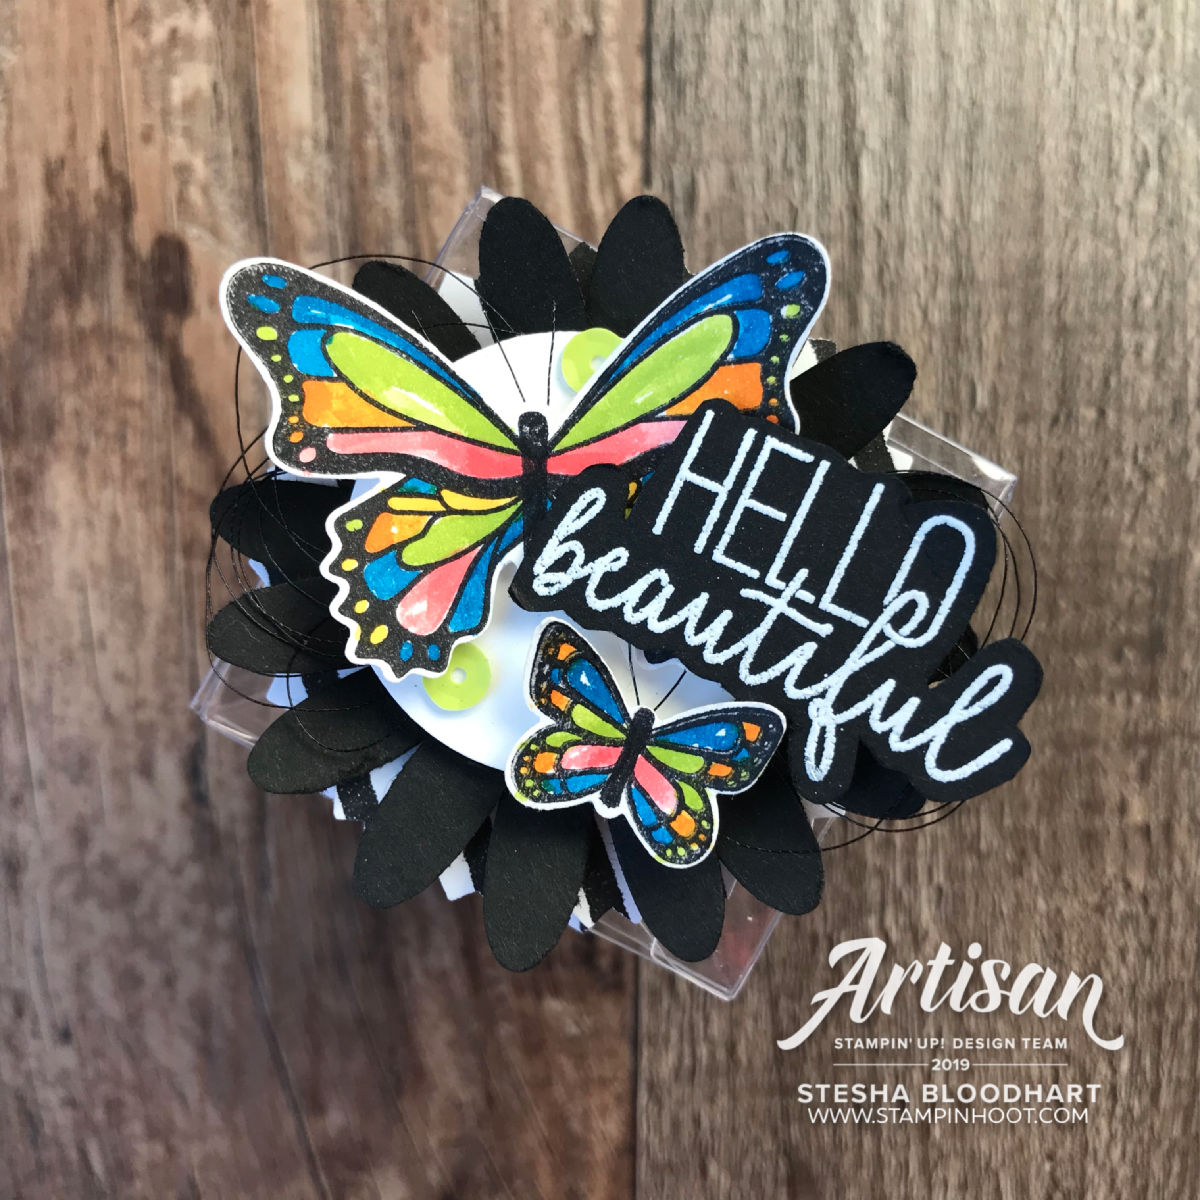 Butterfly Gala by Stampin' Up! Handmade creations by Stesha Bloodhart, Stampin' Hoot!